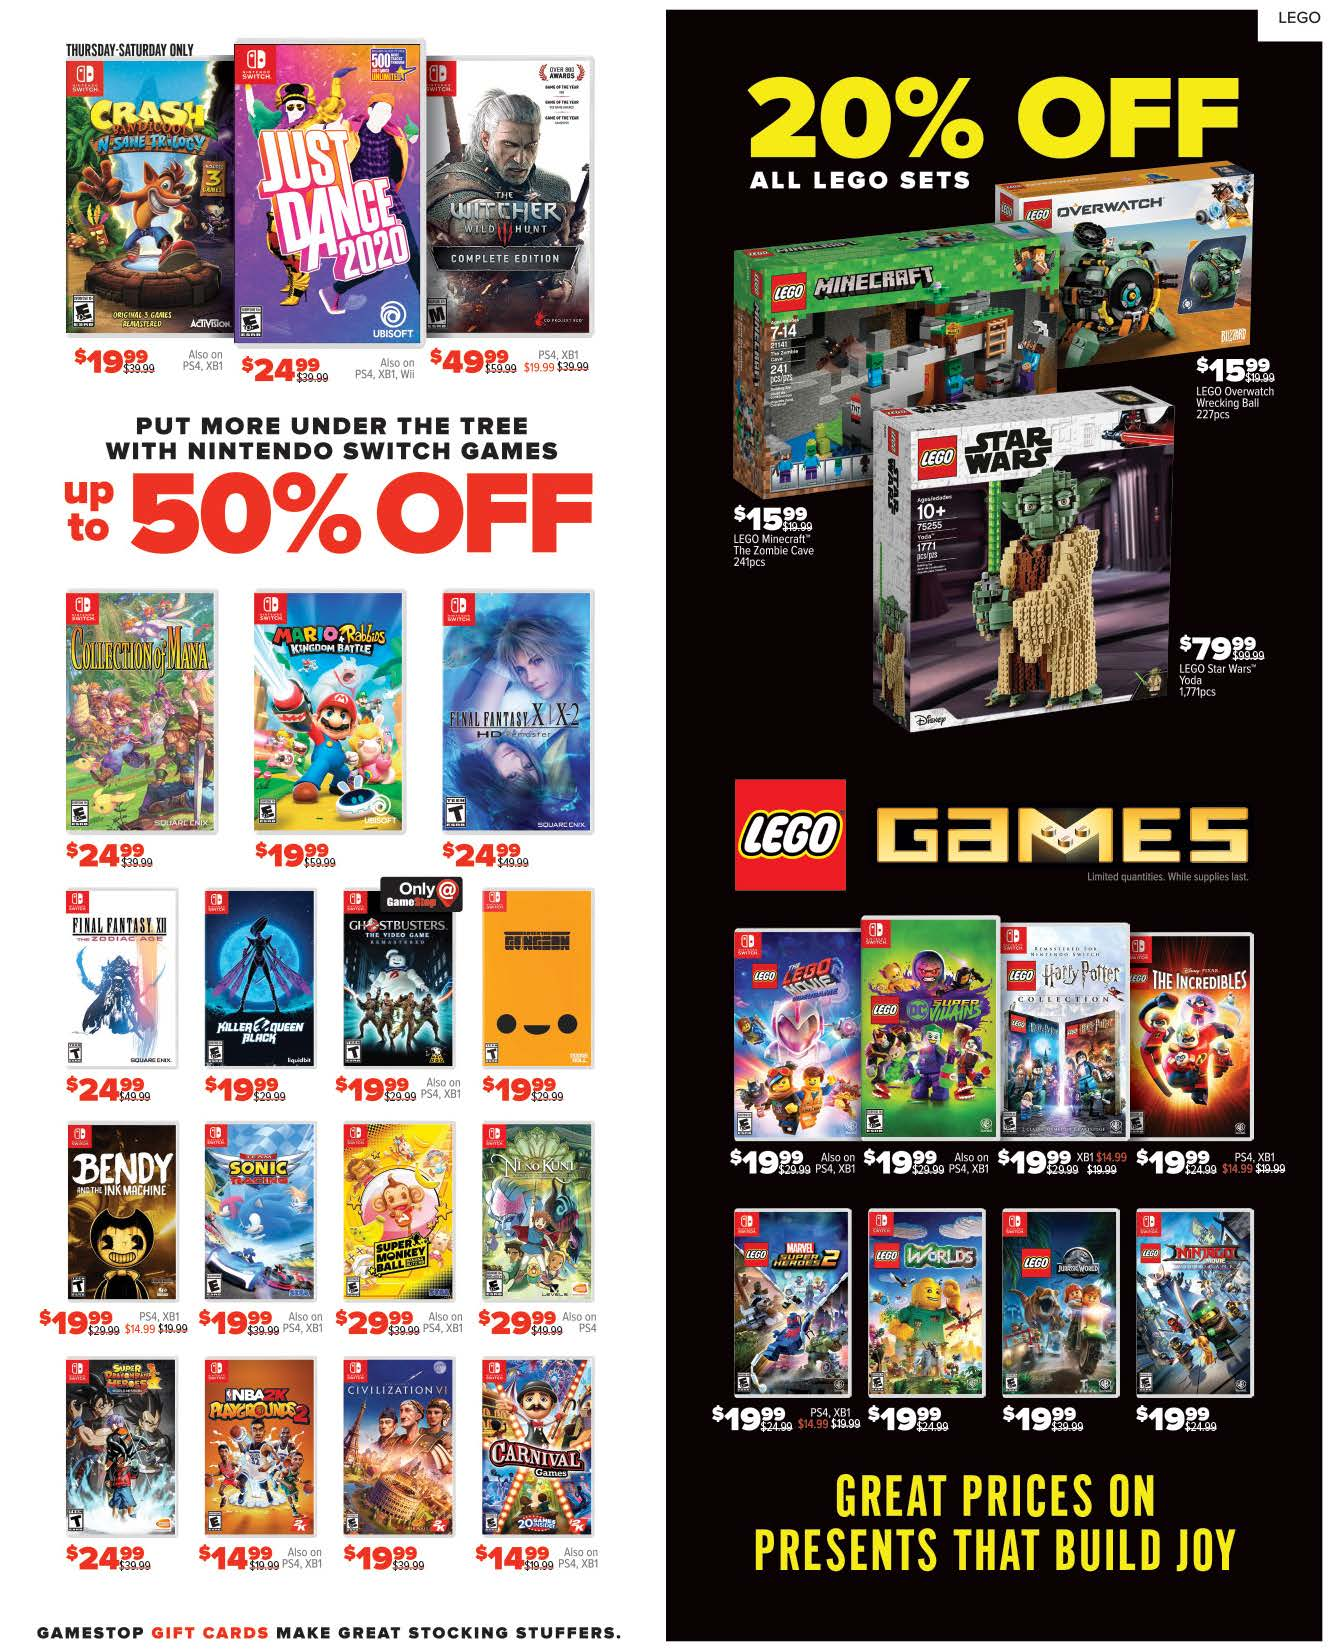 GameStop Black Friday 2019 Page 9